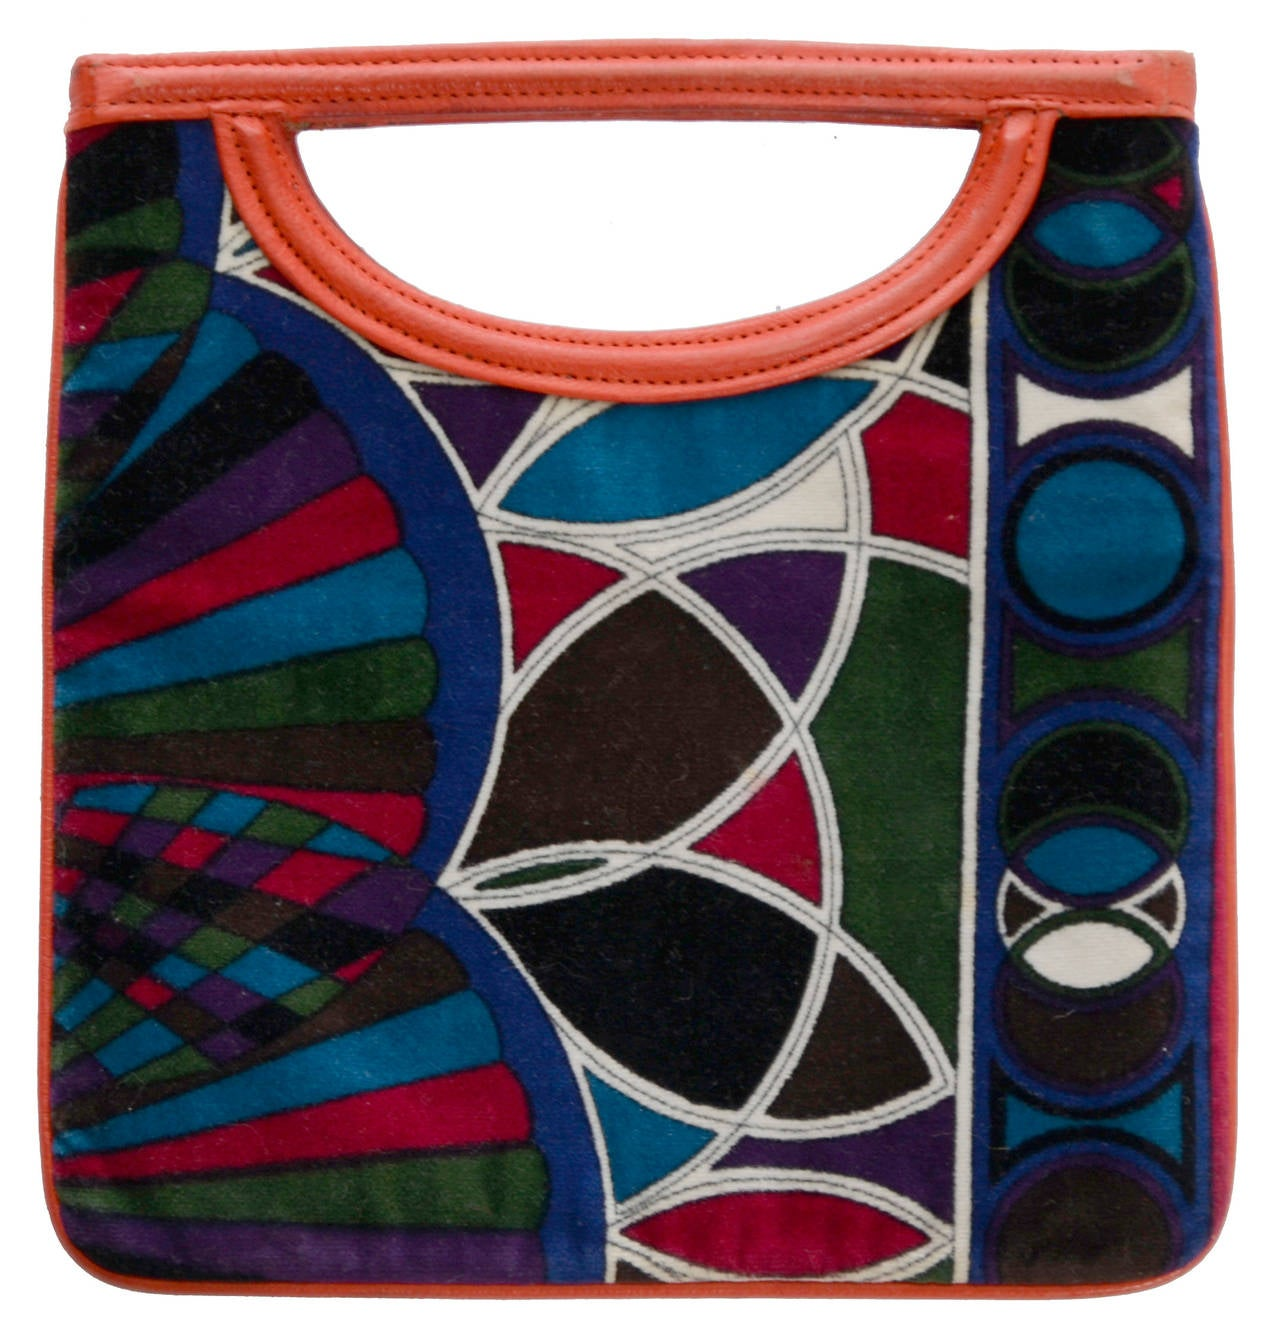 Vintage Emilio Pucci rare multi colored mod geometric op art print velvet handbag with orange leather trim with the Emilio Pucci made by Jana mark.  This gorgeous 1960's handbag measures 8 and 1/2 by 8 inches and was made in Italy.